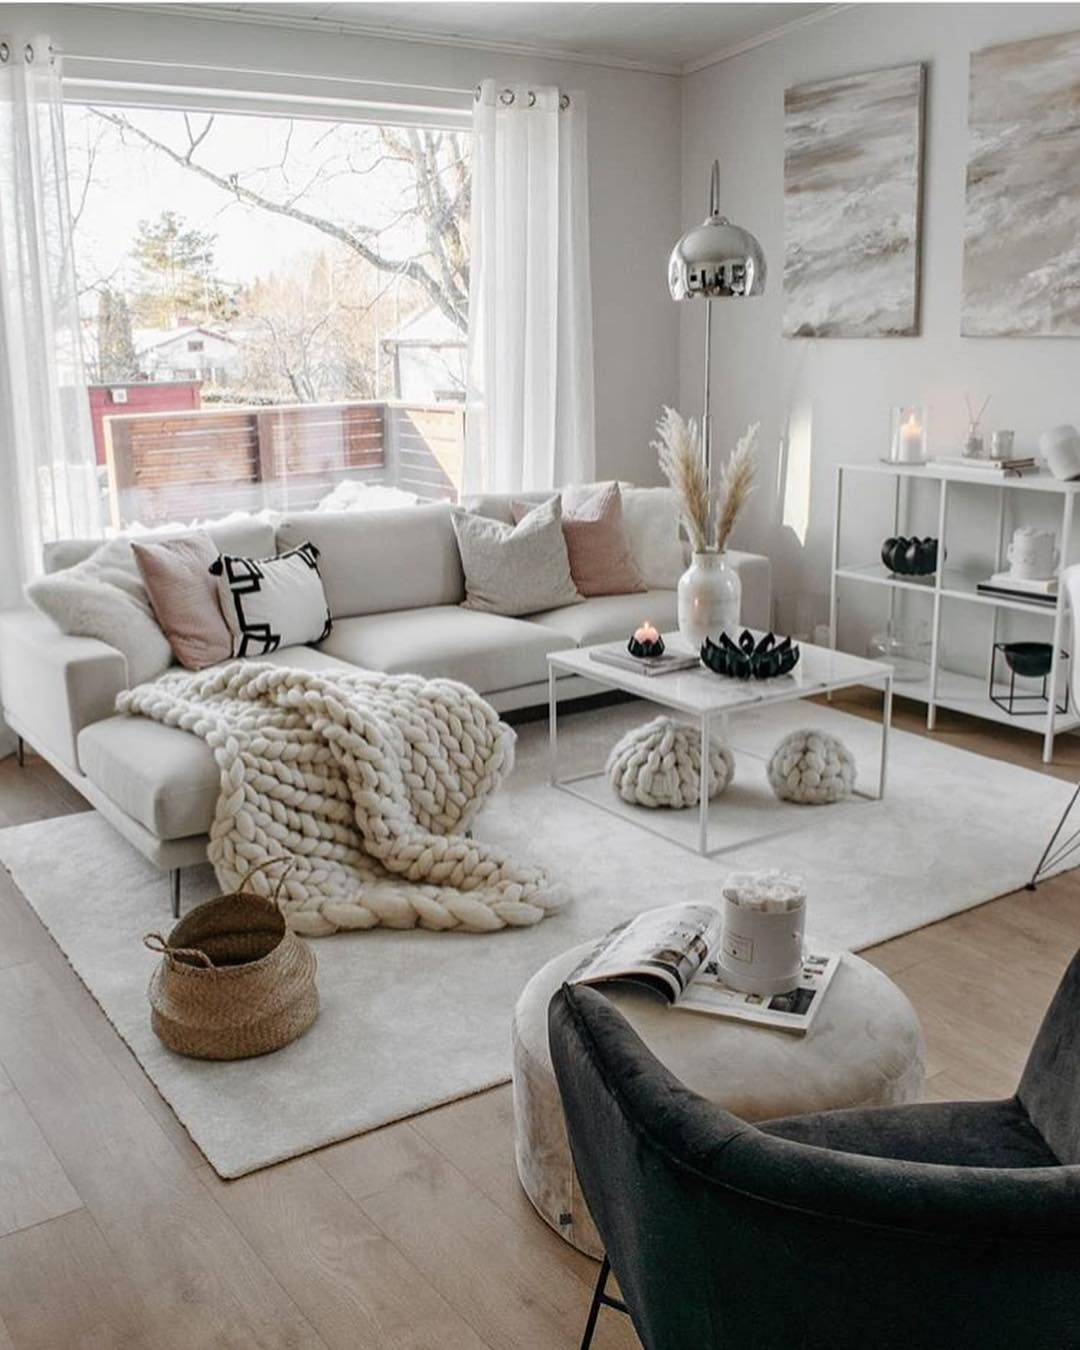 Wonderful Snap Shots Carpet Living Room Decor Thoughts We Hope You P In 2021 Small Apartment Decorating Living Room Small Living Room Decor Living Room Decor Apartment